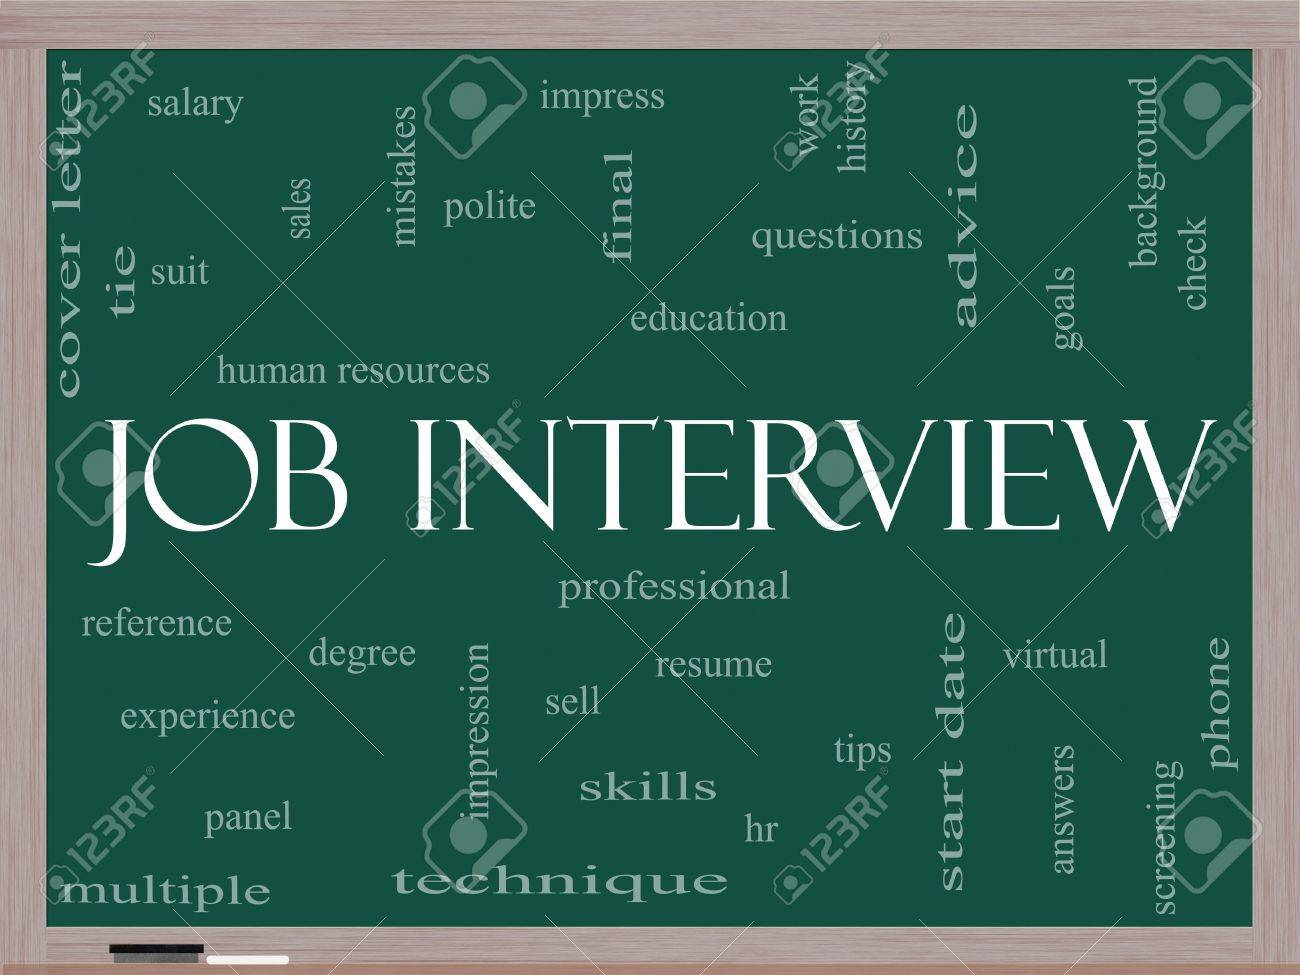 job interview word cloud concept on a blackboard great terms job interview word cloud concept on a blackboard great terms such as suit education